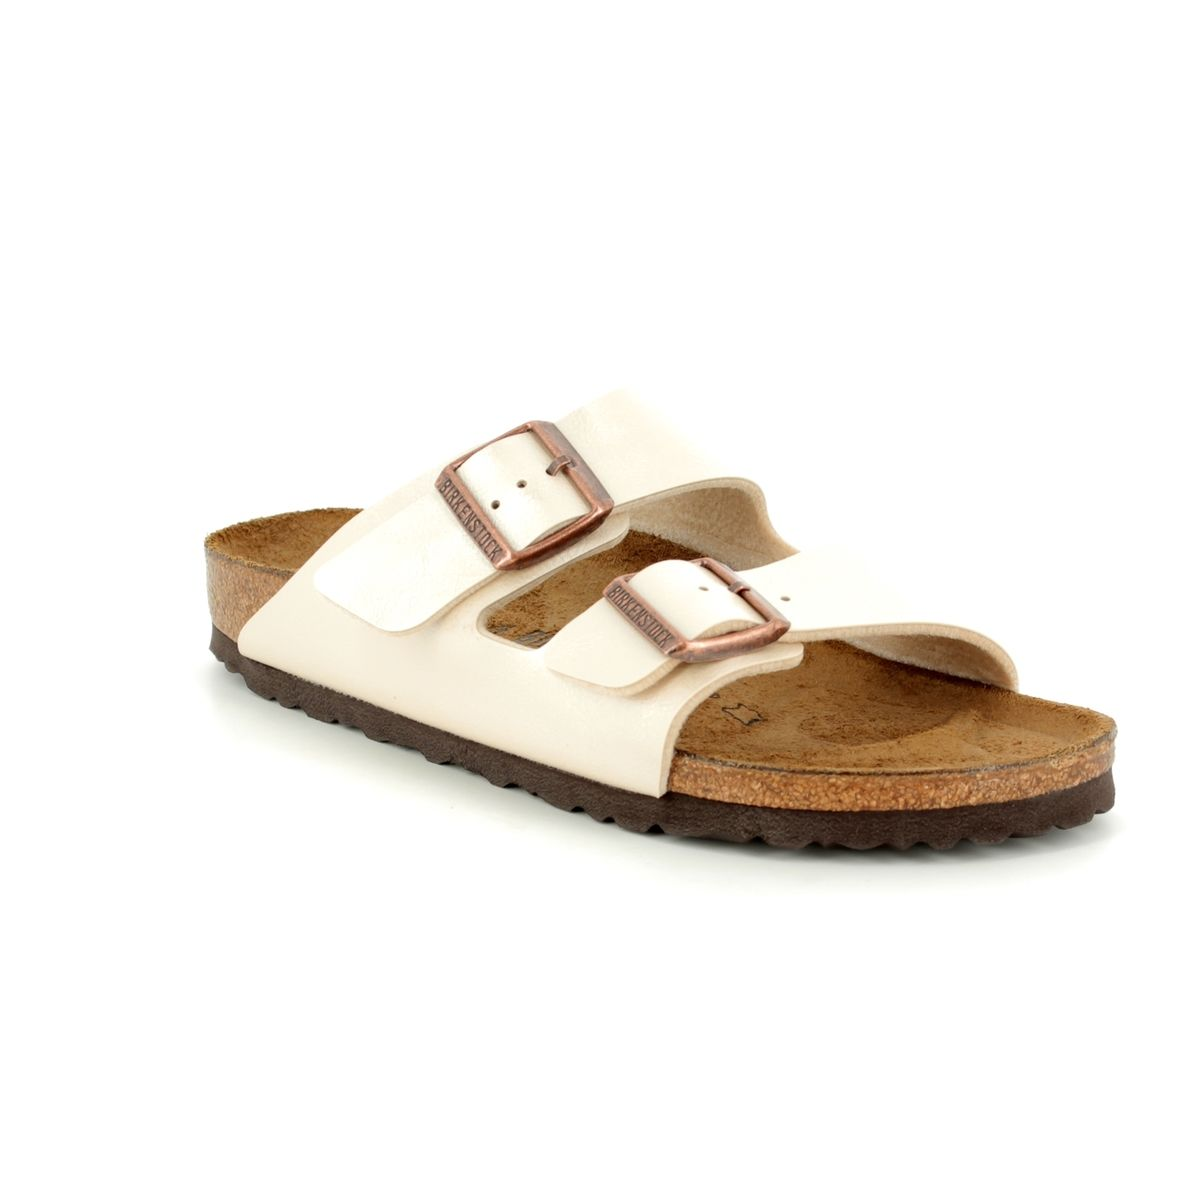 7919771c1 Birkenstock Sandals - Oyster Pearl - 1009/921 ARIZONA NARROW FIT LADIES